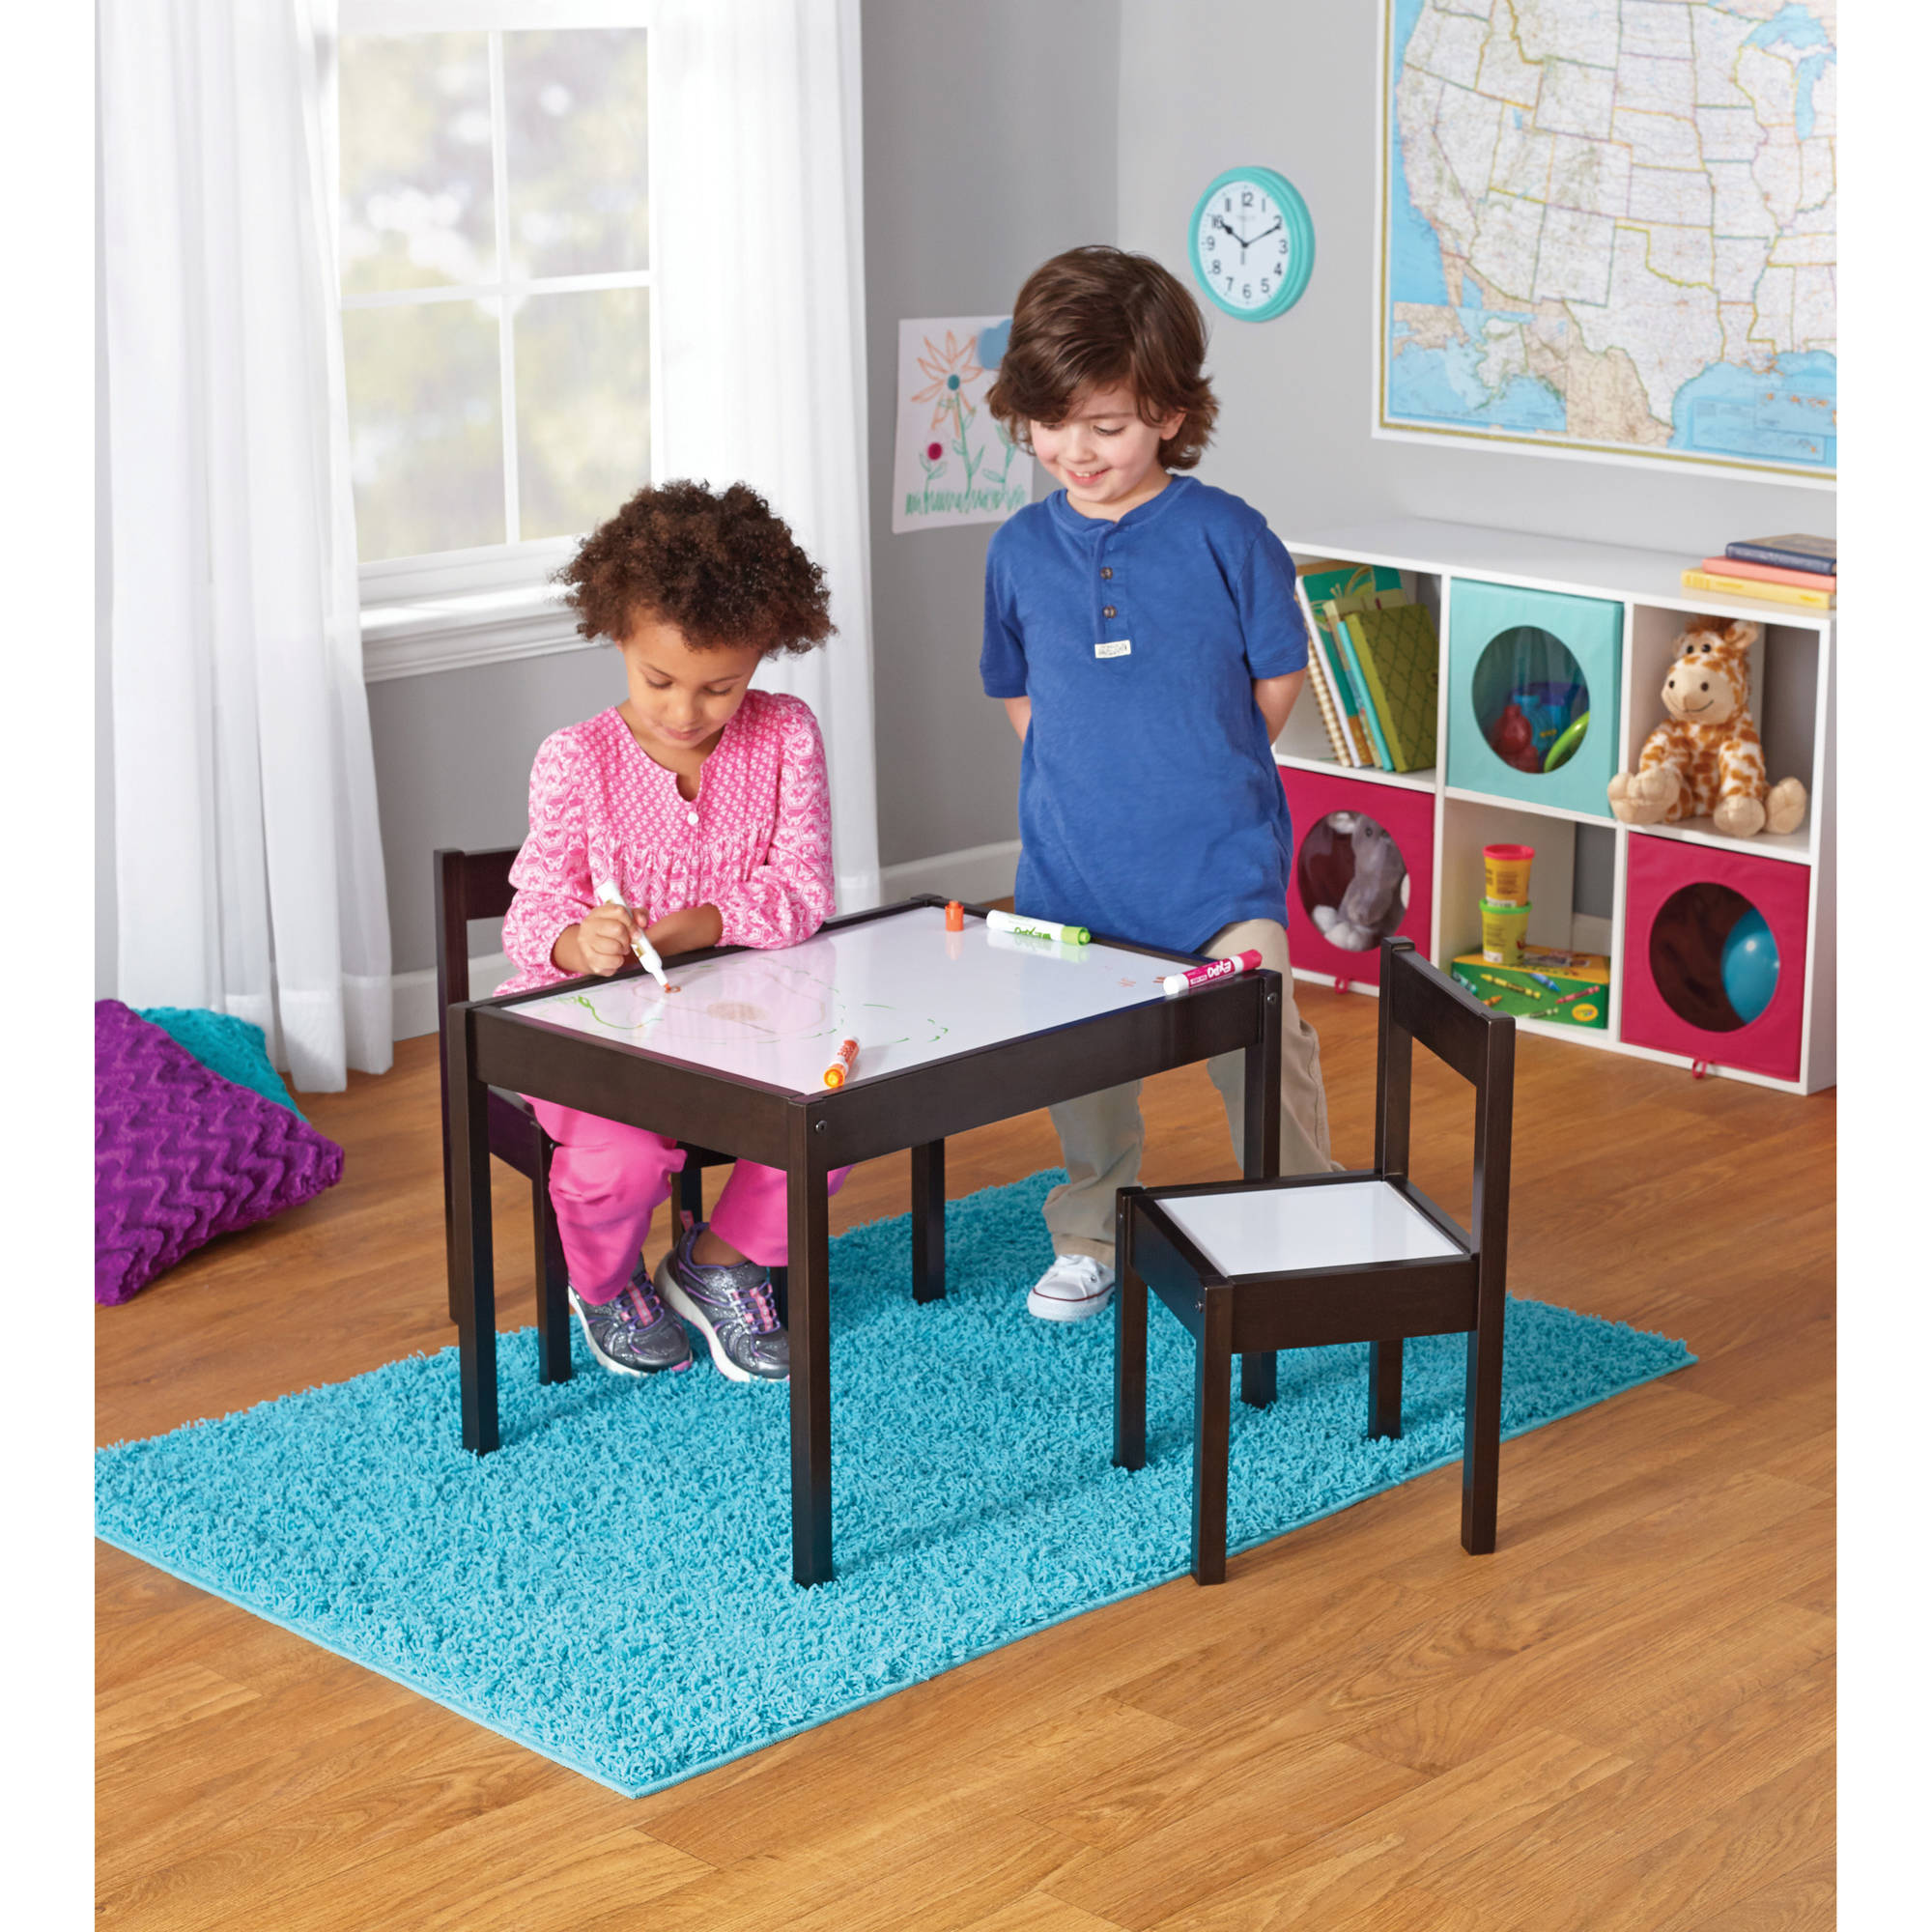 3-Piece Children's Table and Chairs, Espresso